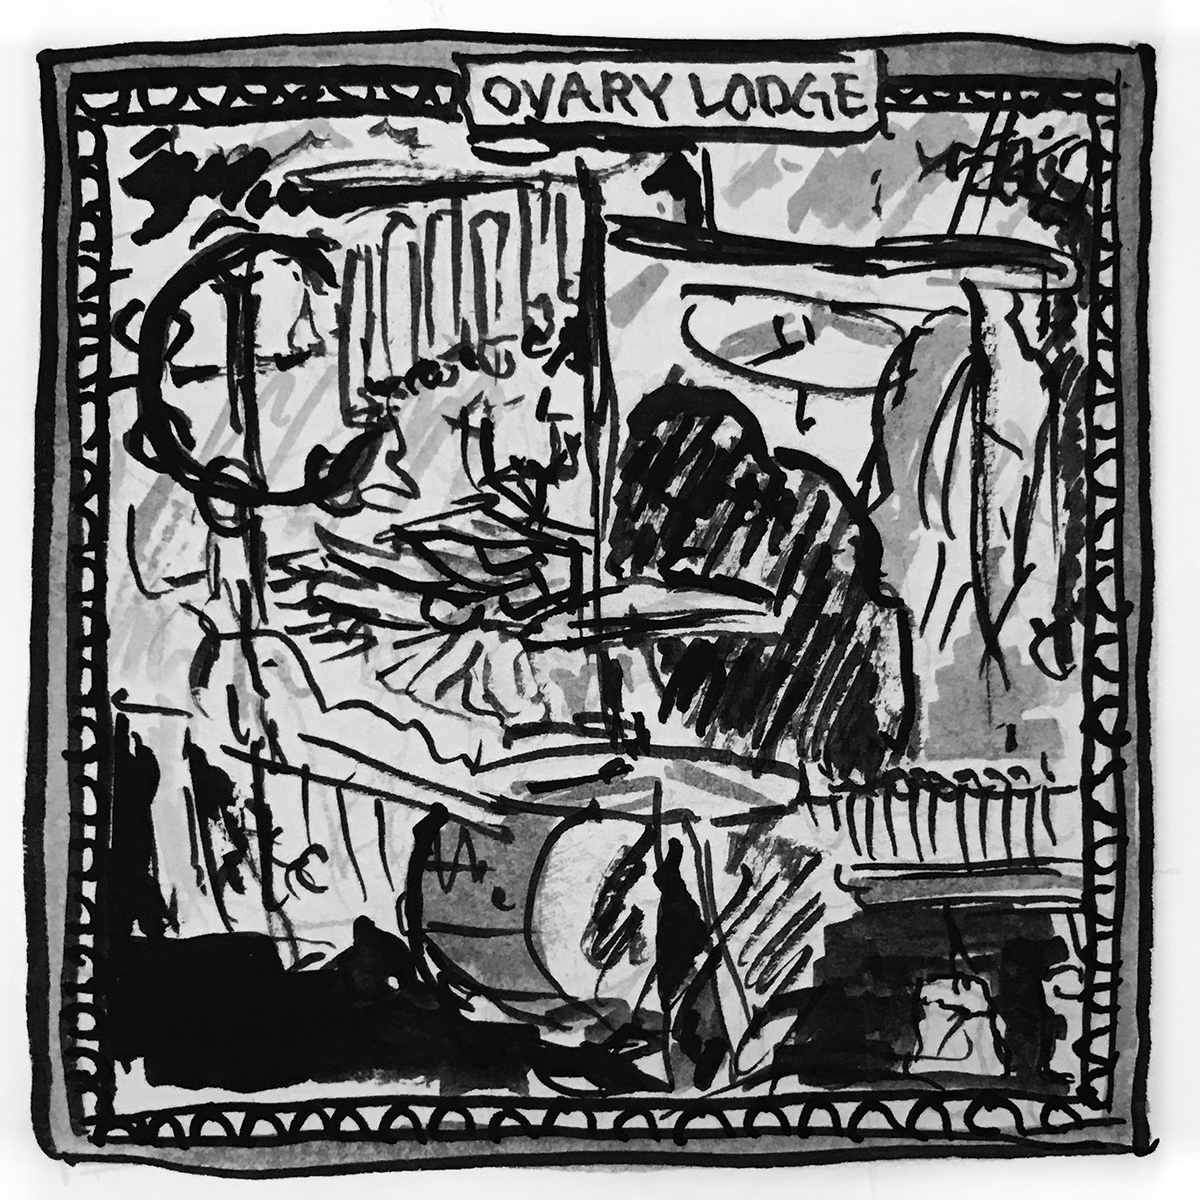 Ovary Lodge s/t